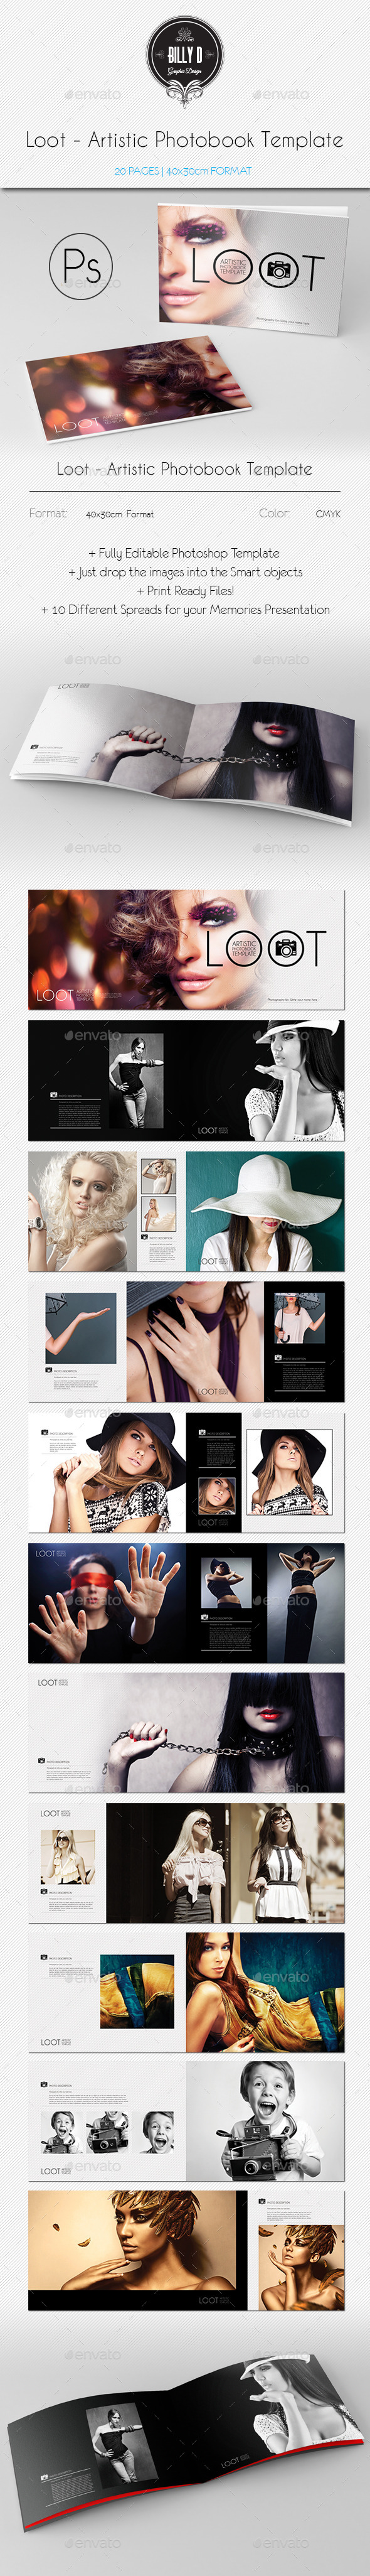 GraphicRiver Loot Artistic Photobook Template 9953812